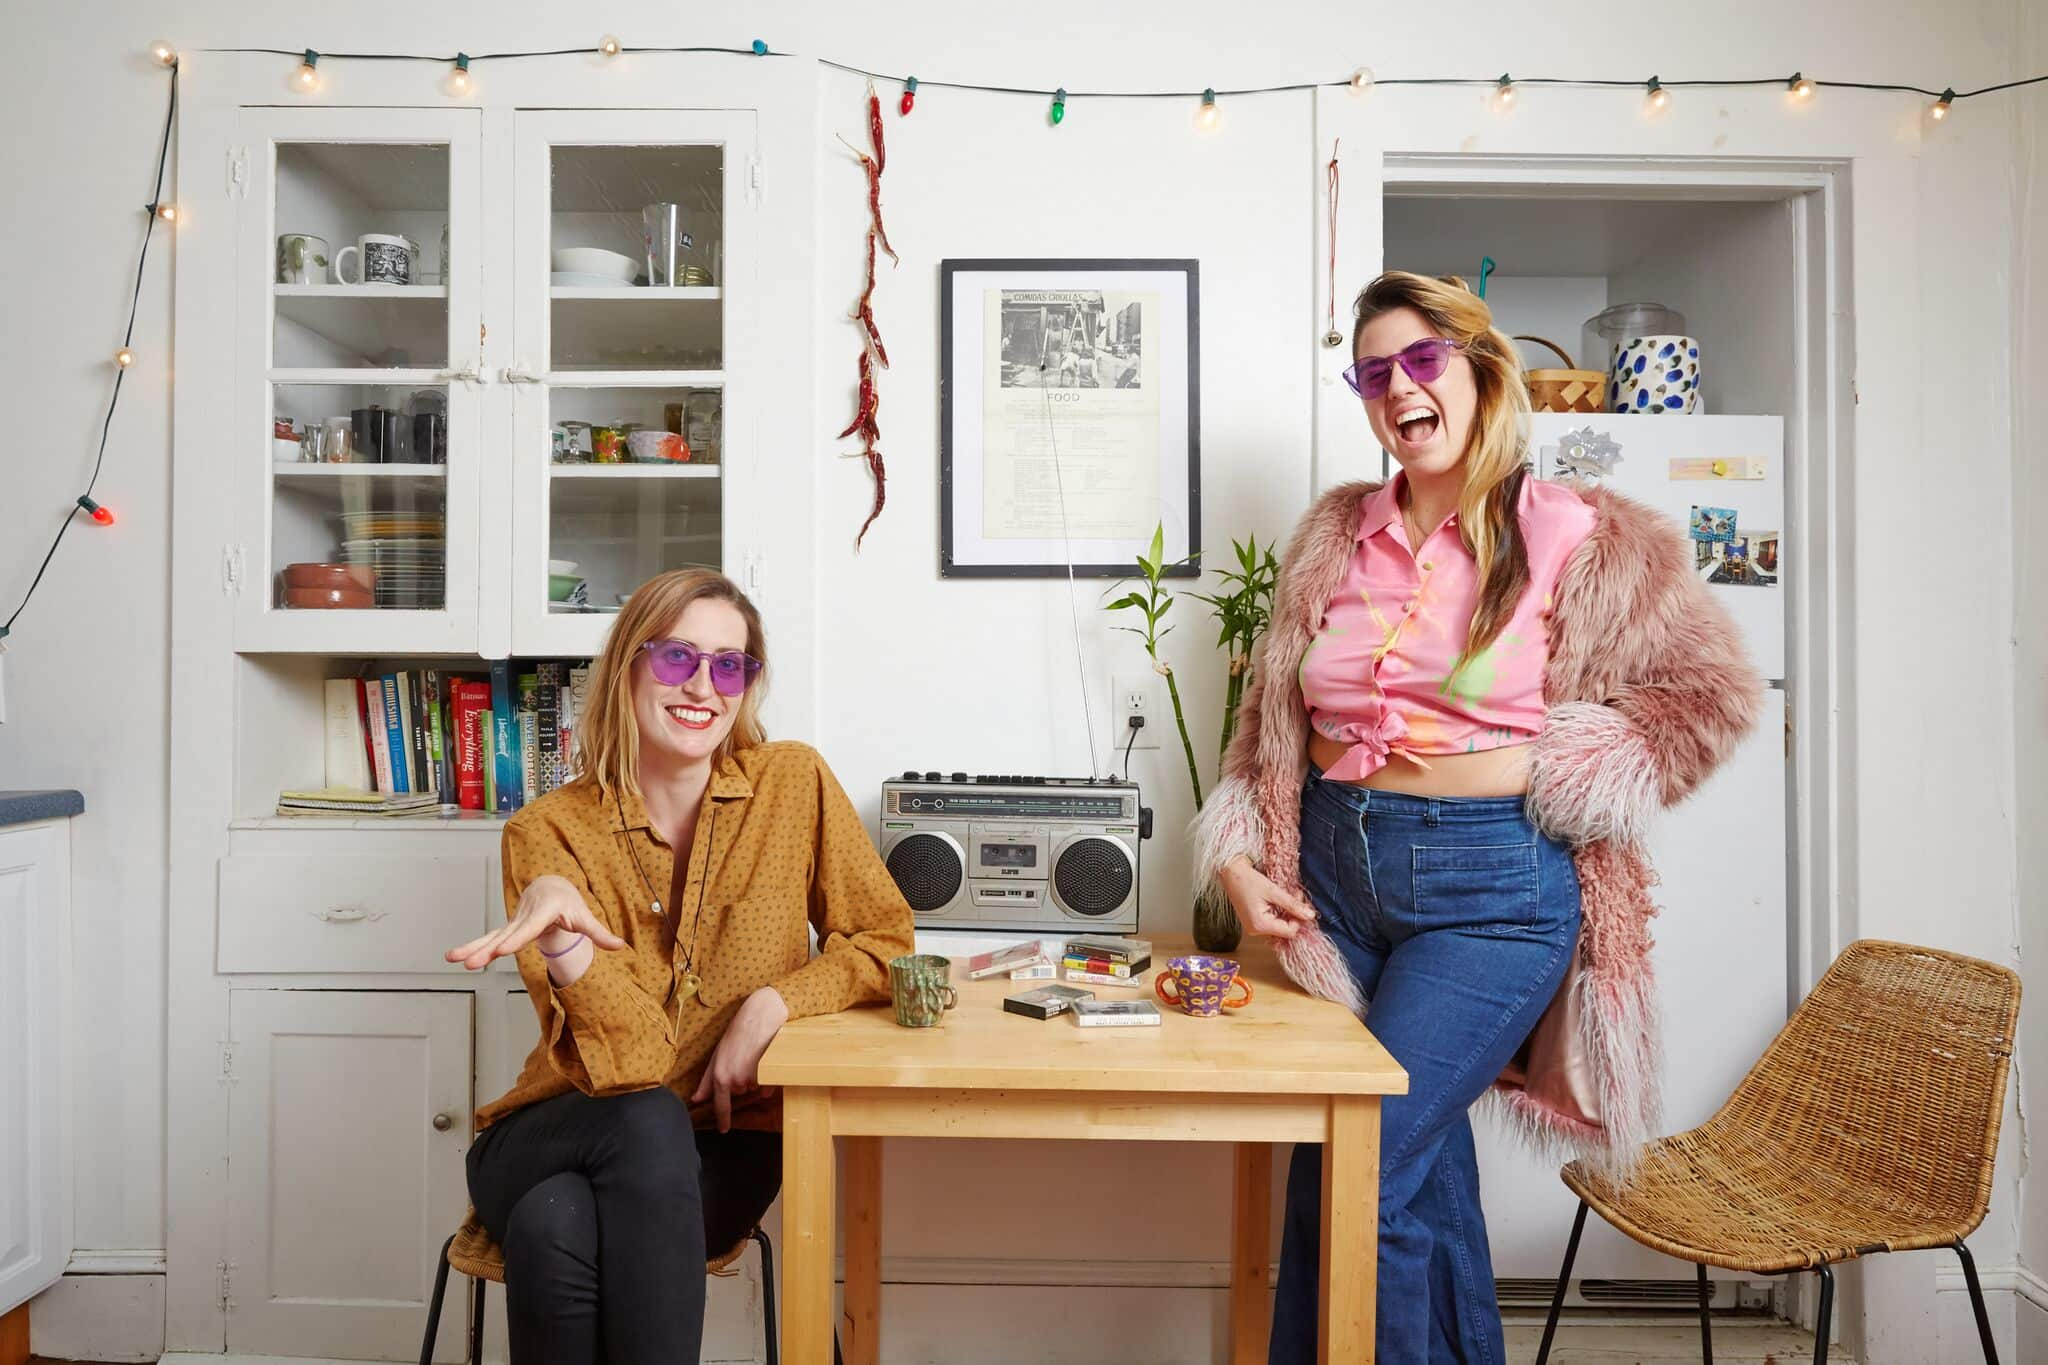 ef49ff8f88 At Home in Hudson with Artist-Chefs Hannah Black and Carla Perez-Gallardo of